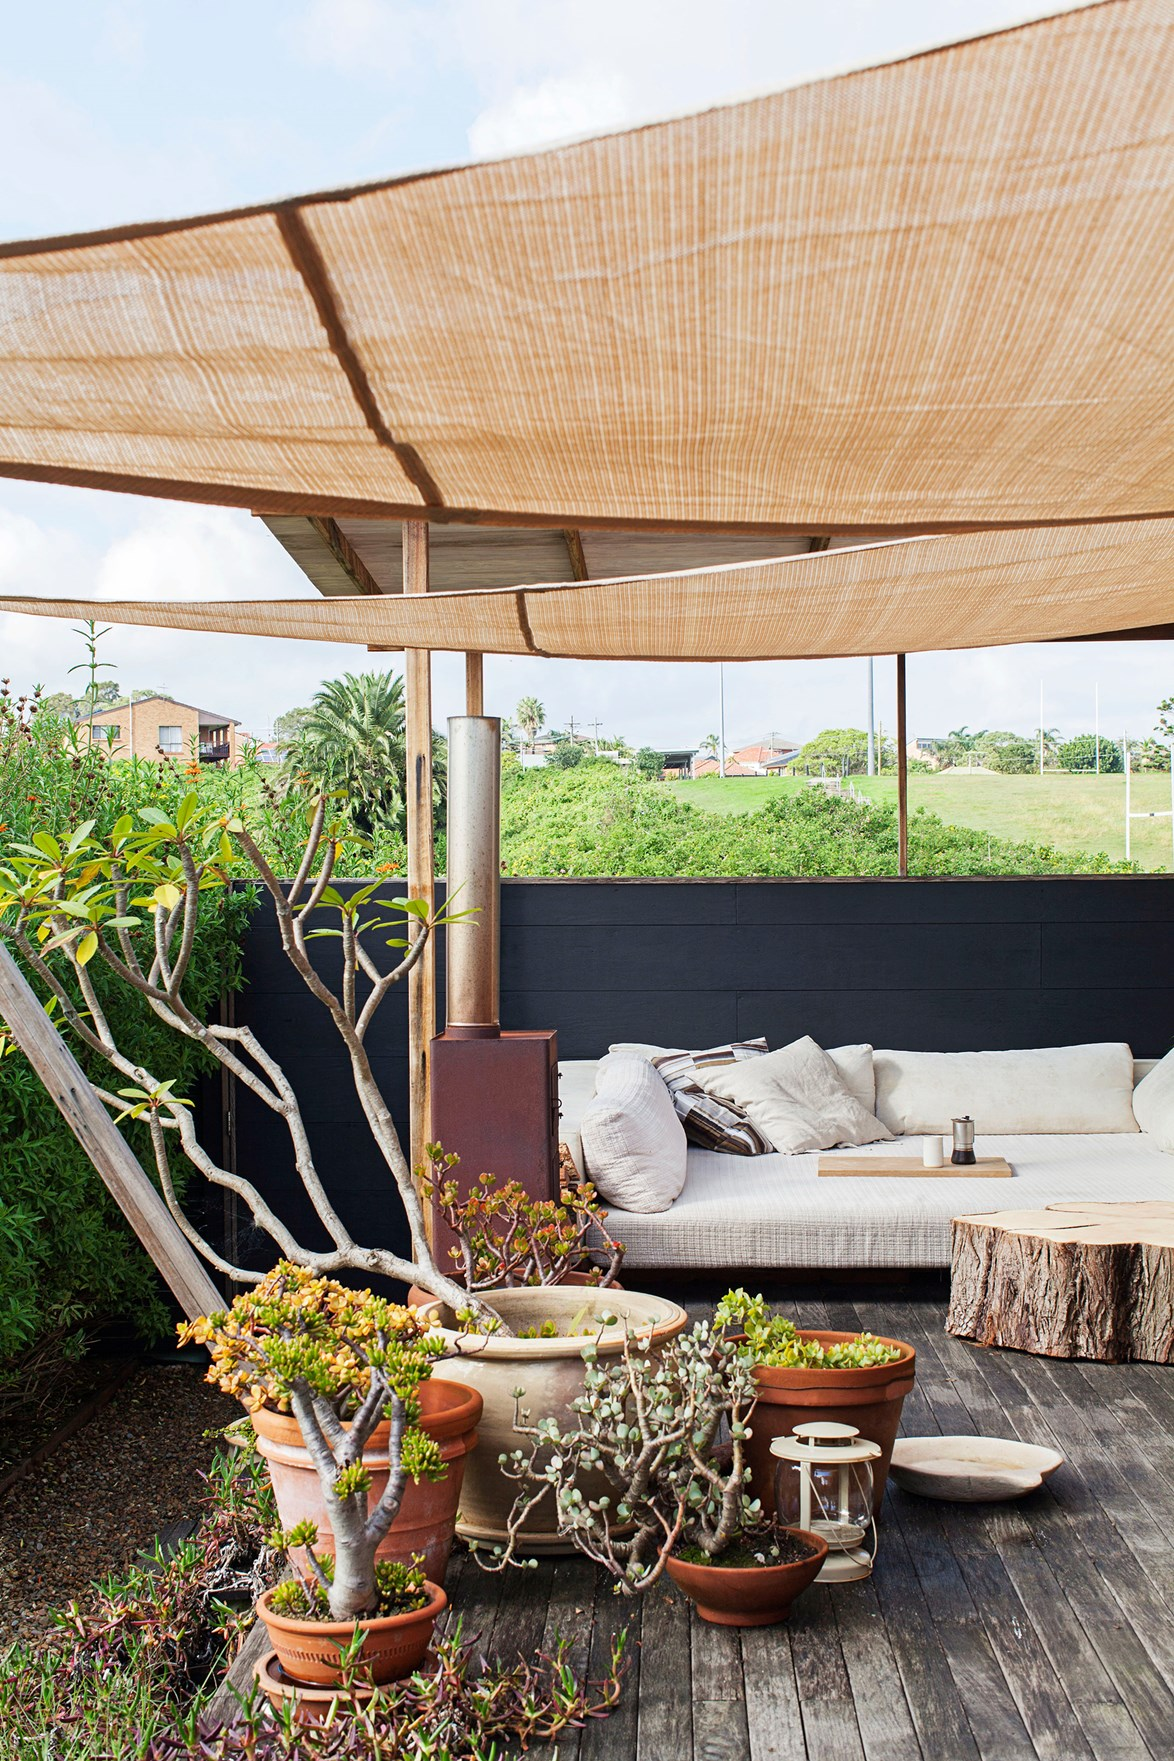 "It's hard to believe this [Scandi-style sanctuary](https://www.homestolove.com.au/gallery-diana-and-noeks-sanctuary-in-the-city-1716|target=""_blank"") is located just minutes from Sydney's CBD. This outdoor day bed, sheltered by a shade sail and surrounded by leafy plants and natural timbers, just adds to the relaxing vibe. Did we mention there is also a meditation tent in the garden nearby?! *Photo:* Francoise Baudet"